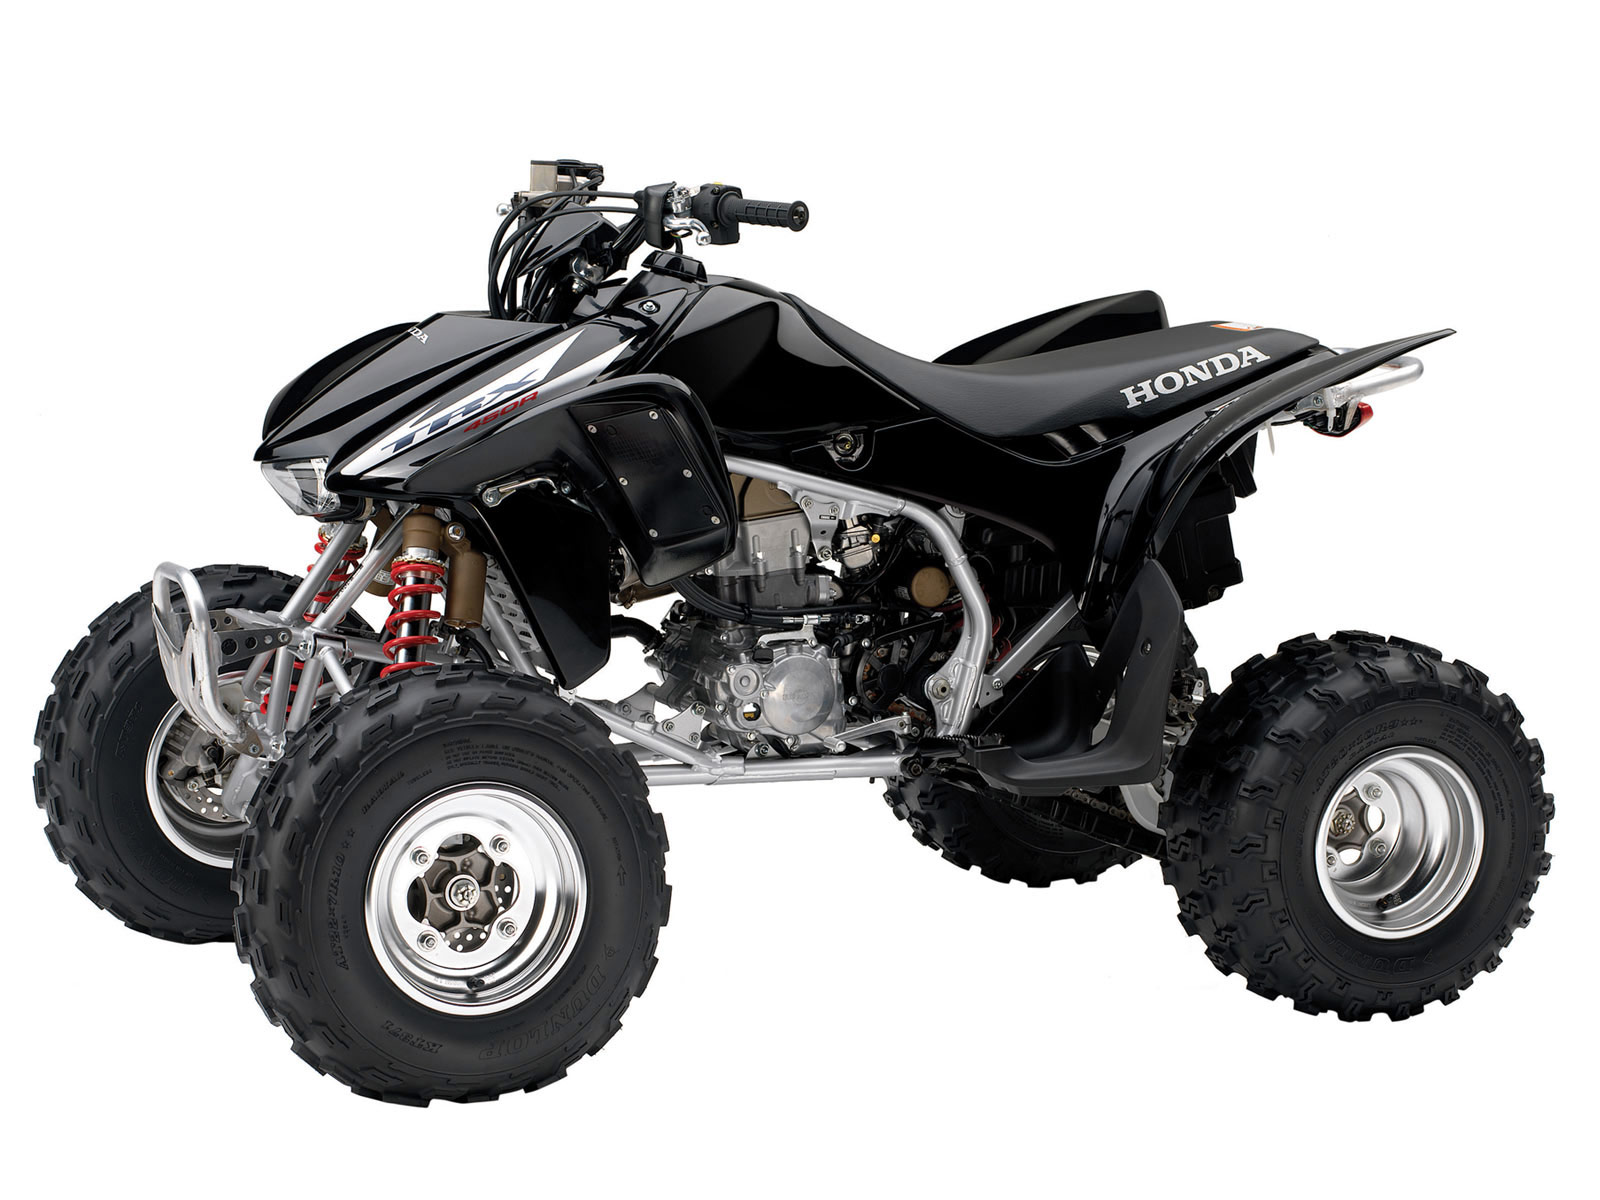 2006 honda atv trx450r pictures insurance accident lawyers. Black Bedroom Furniture Sets. Home Design Ideas